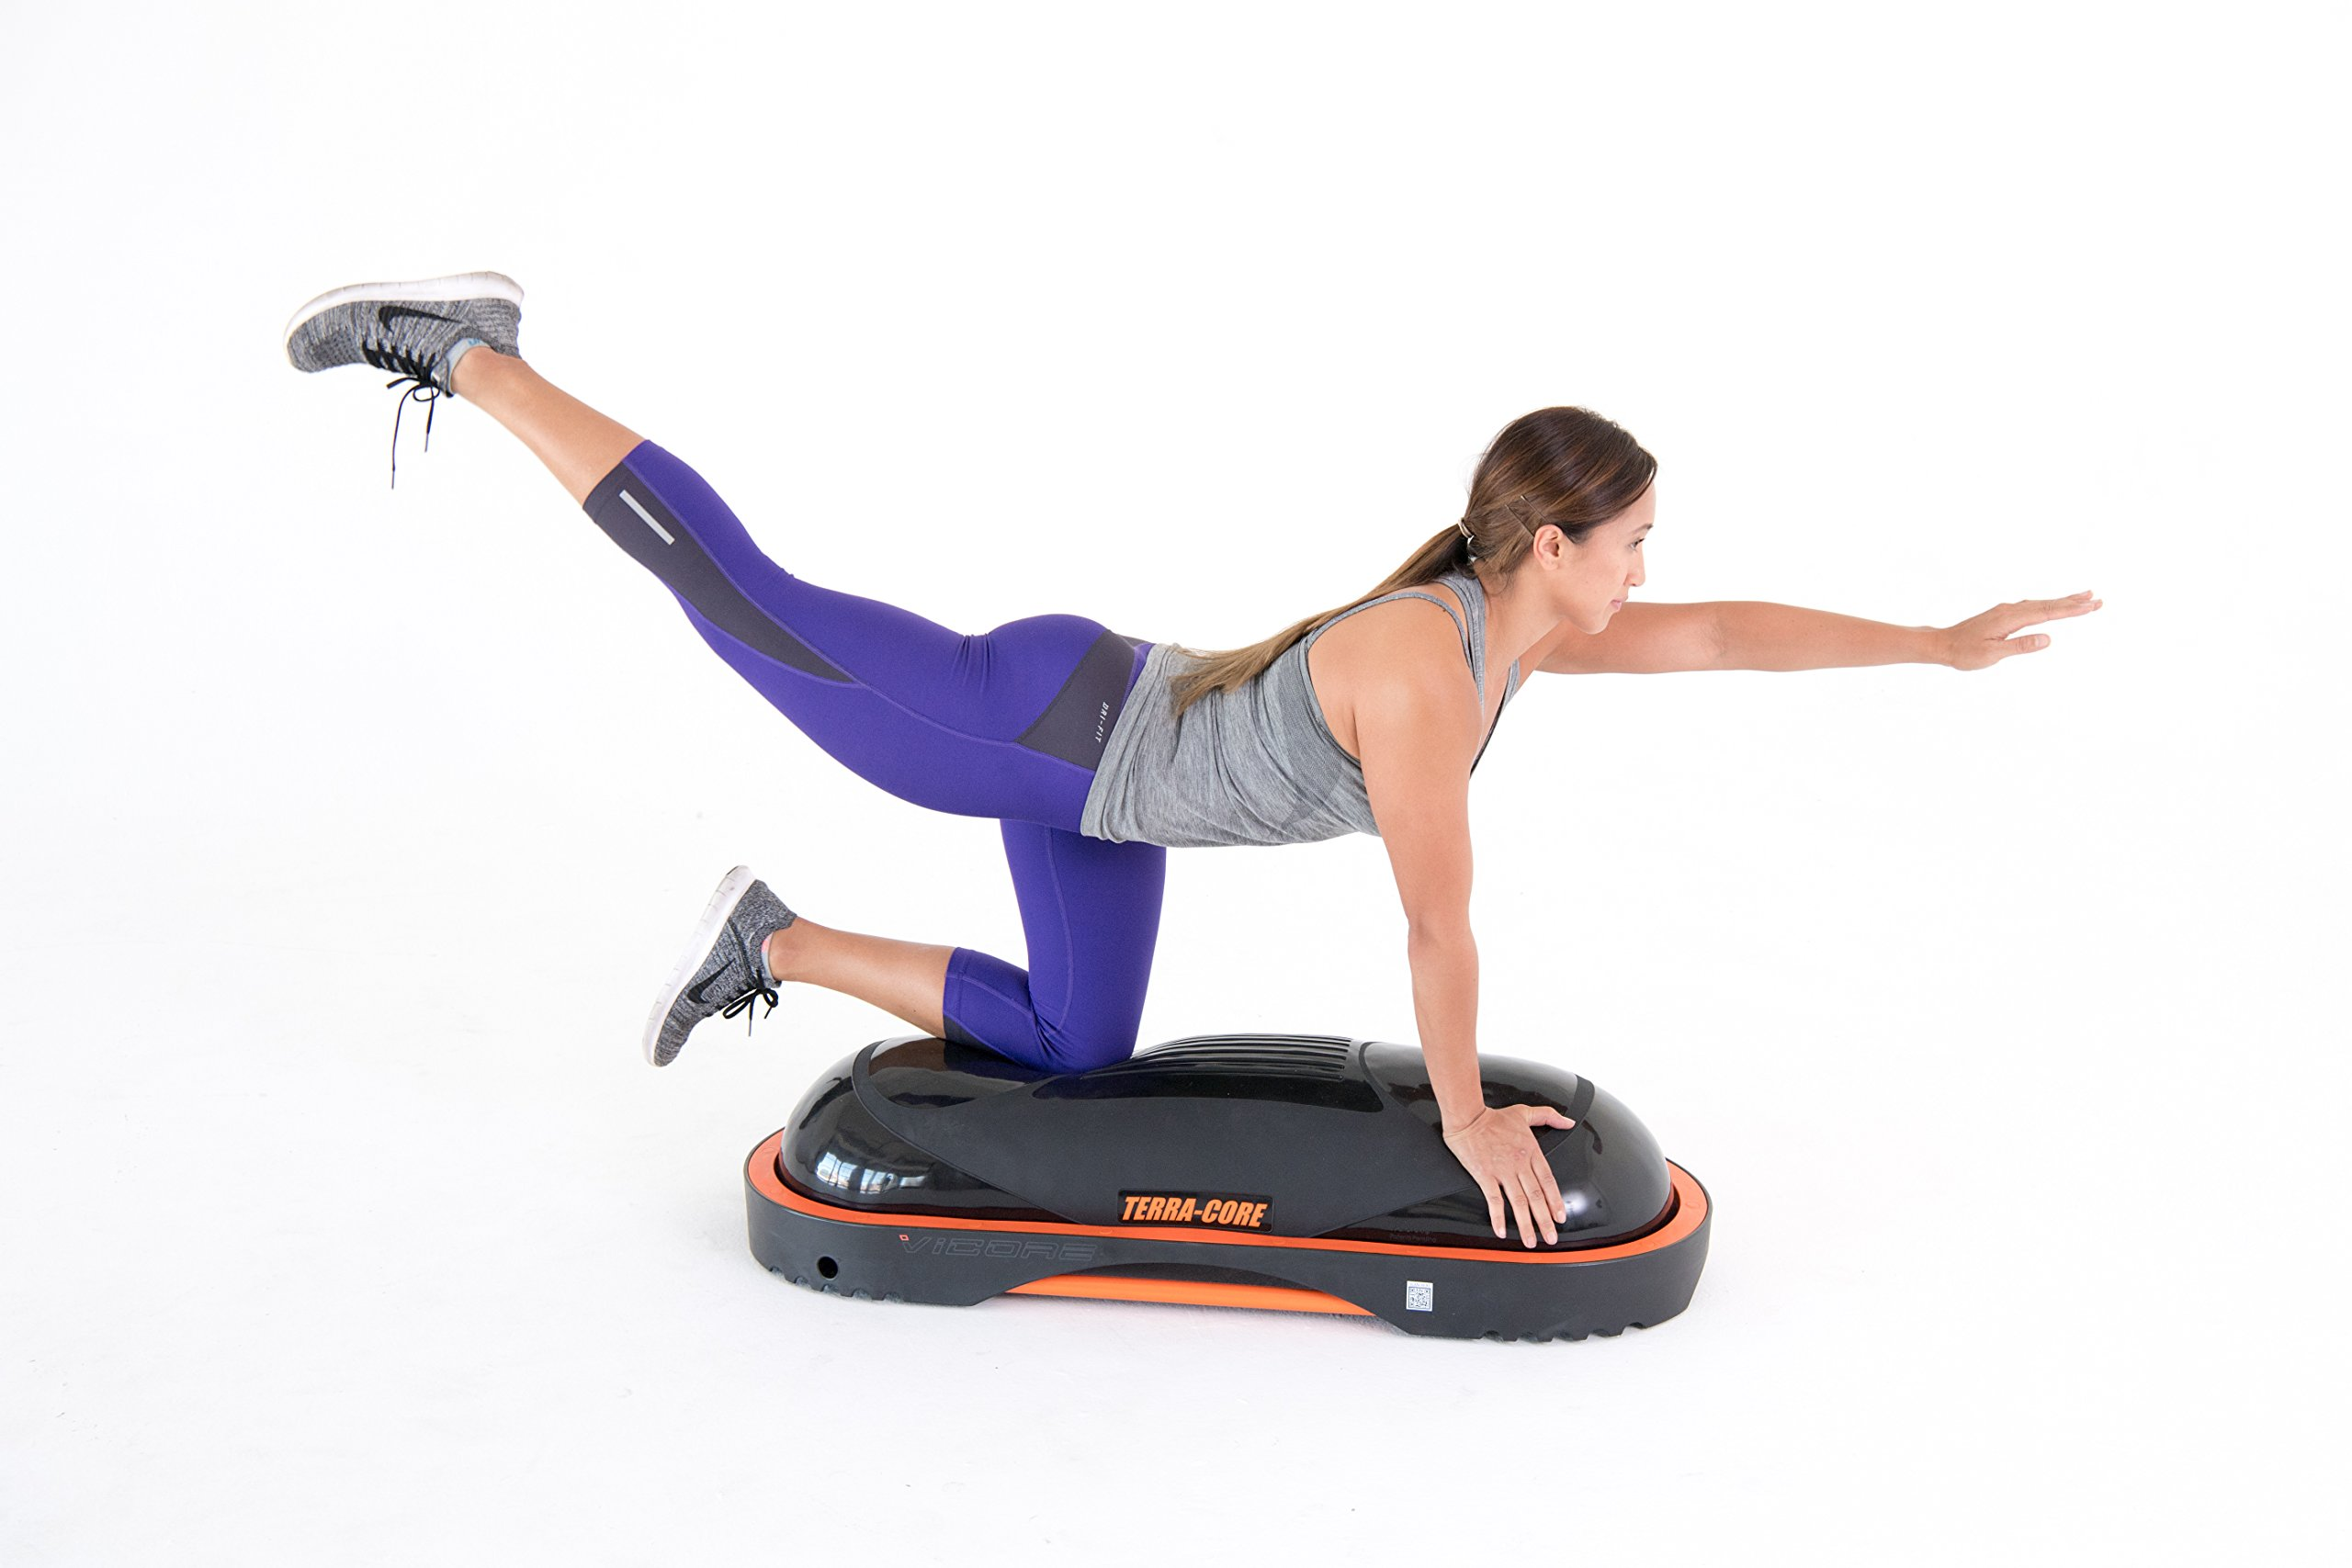 Terra Core Balance Trainer, Stability, Agility, Strength, Functional Fitness, Core Exercises, Abs Workout, Pushups, Weight Bench. by Vicore Fitness (Image #4)